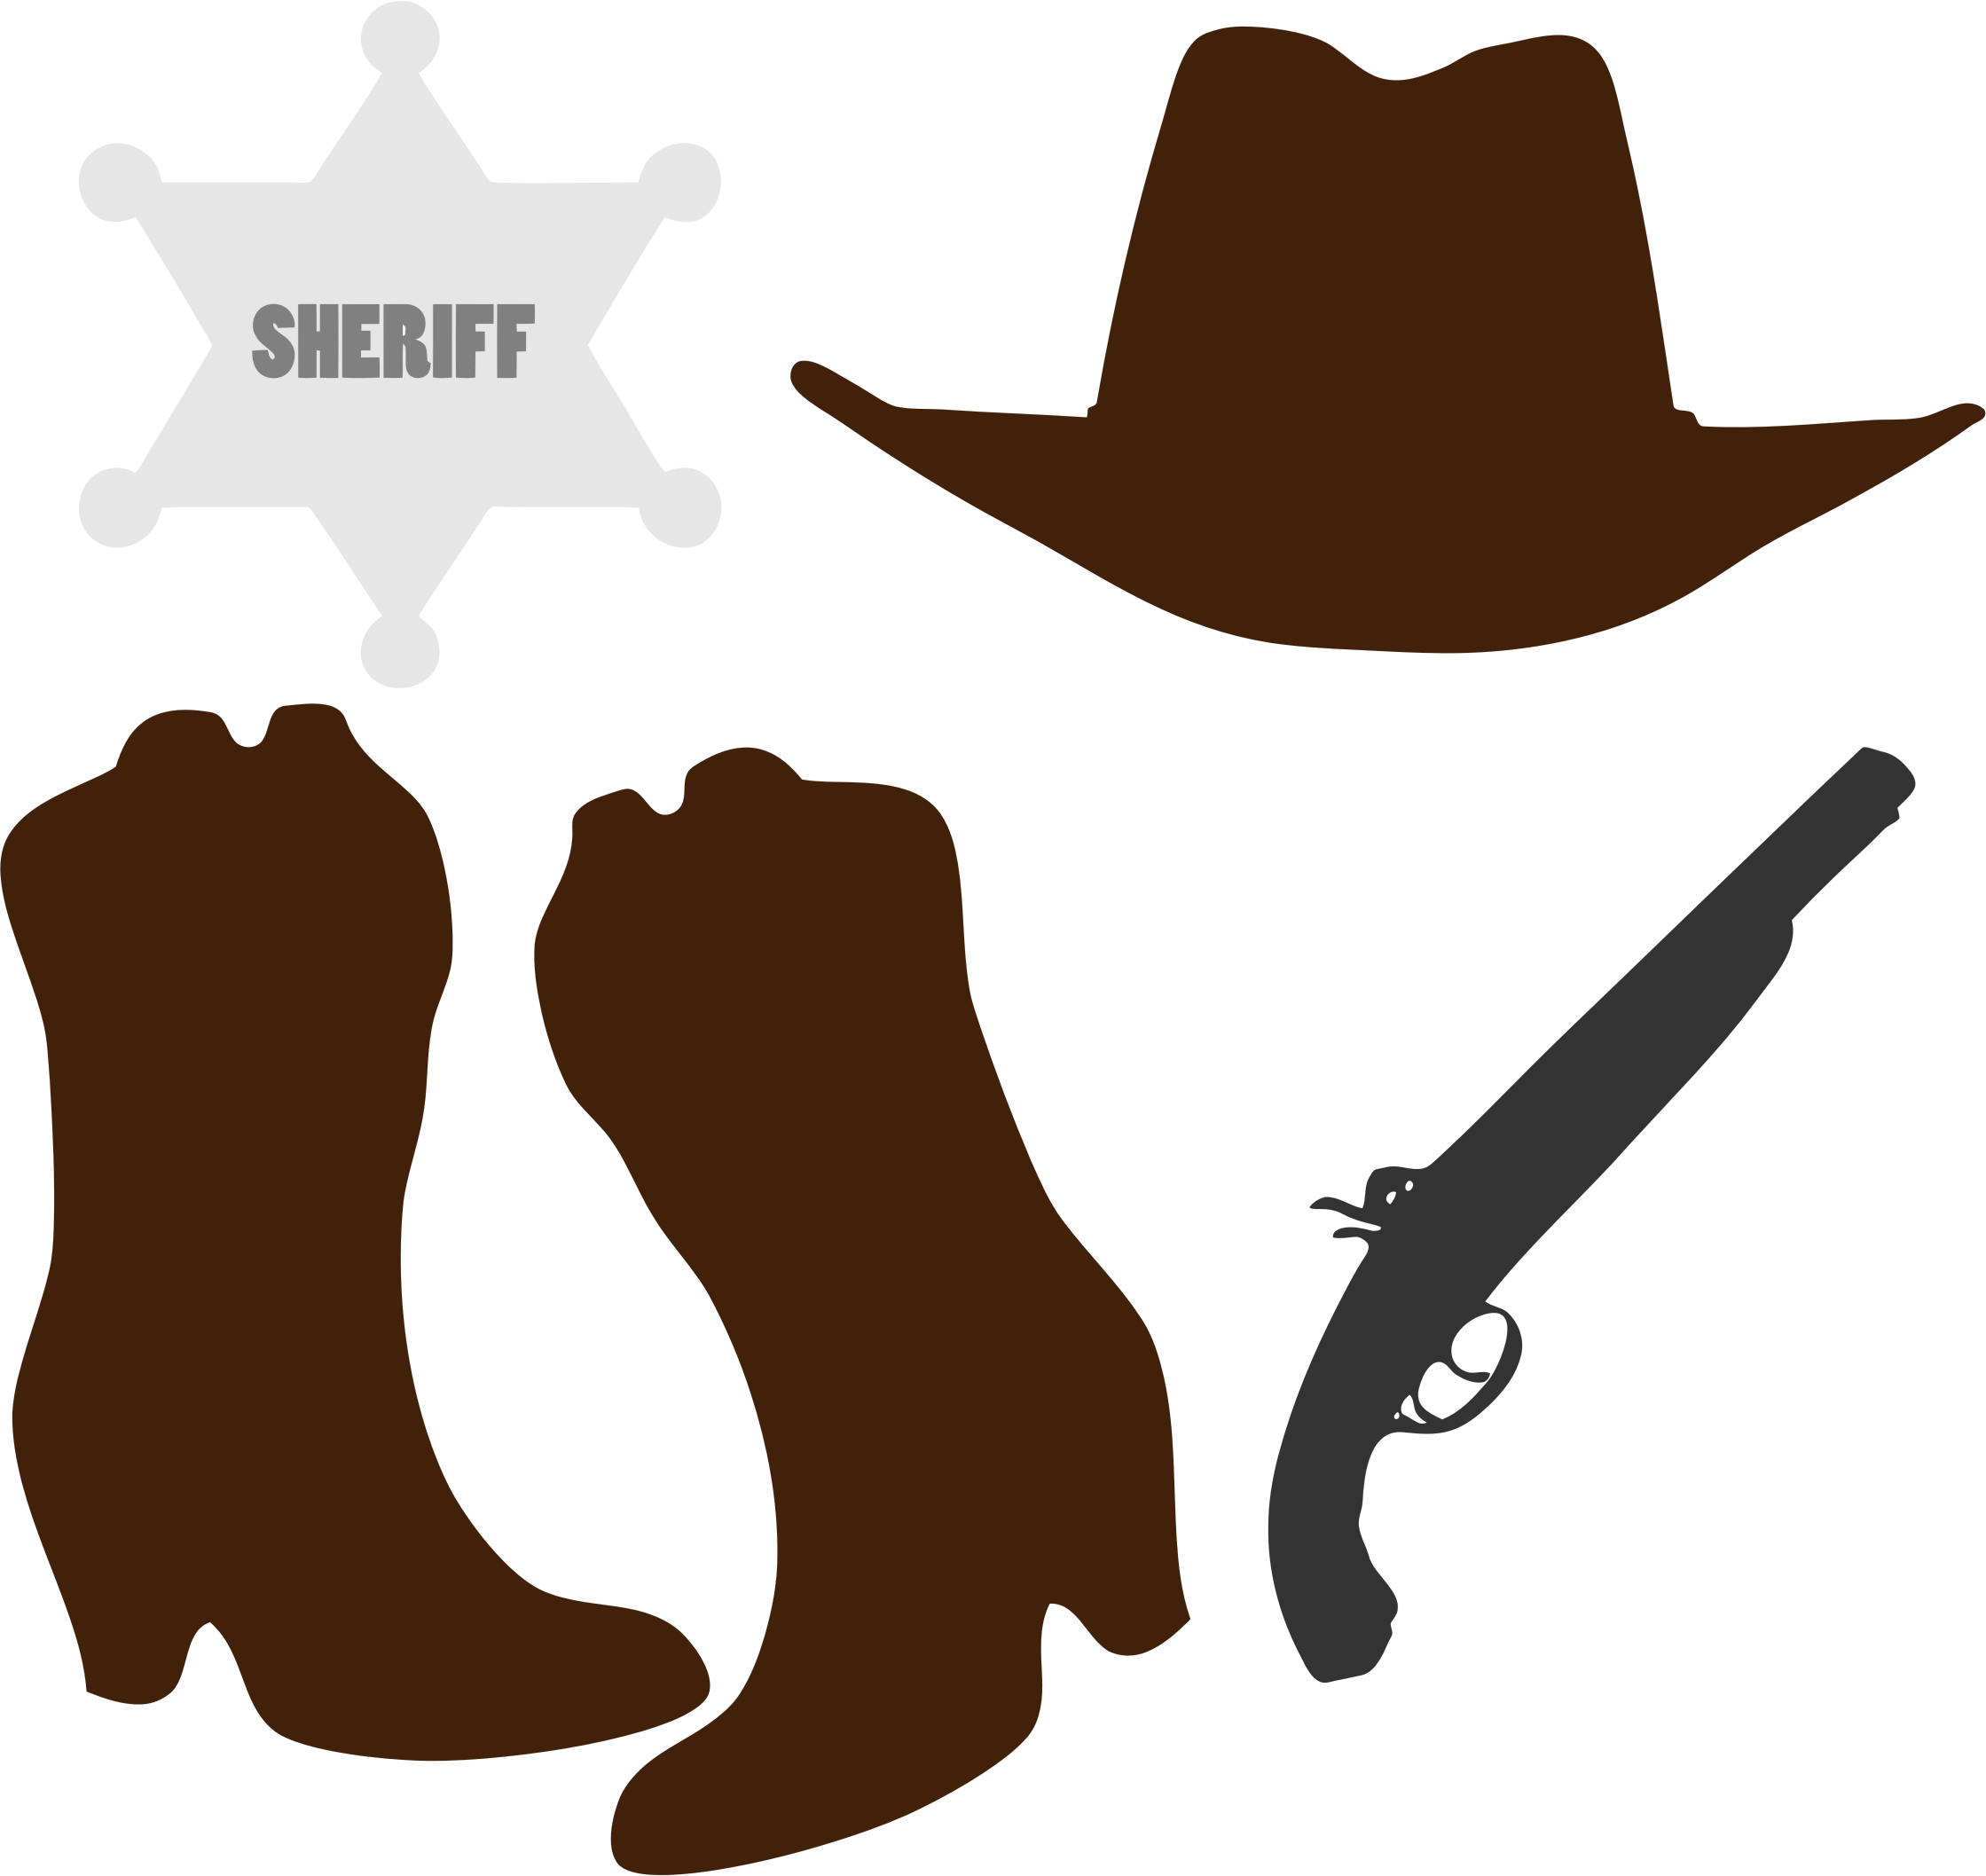 Sheriff clipart cowboy clothes. Clothing and accessories big